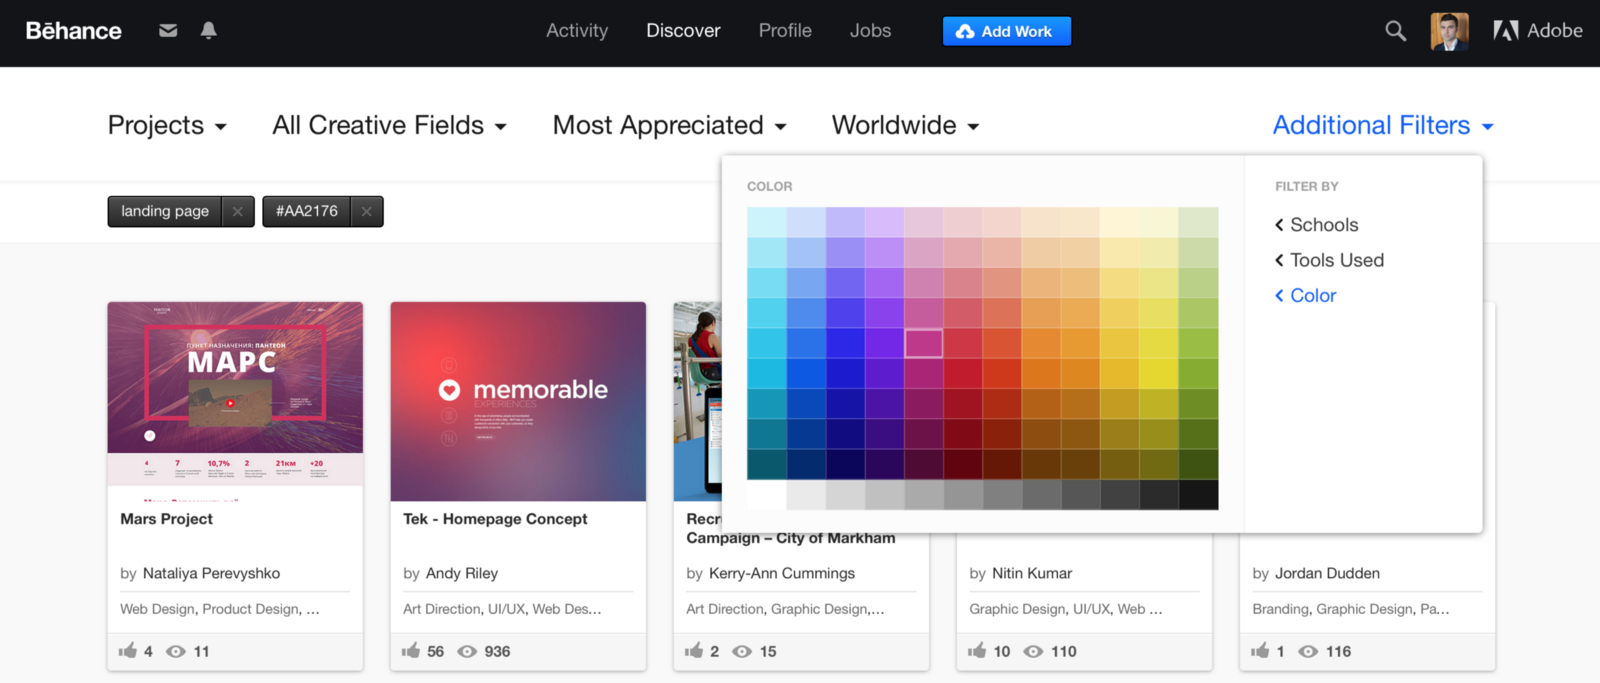 Color adobe online - Behance Showcase And Discover The Latest Work From Top Online Portfolios By Creative Professionals Across Industries It S Also A Great Source For